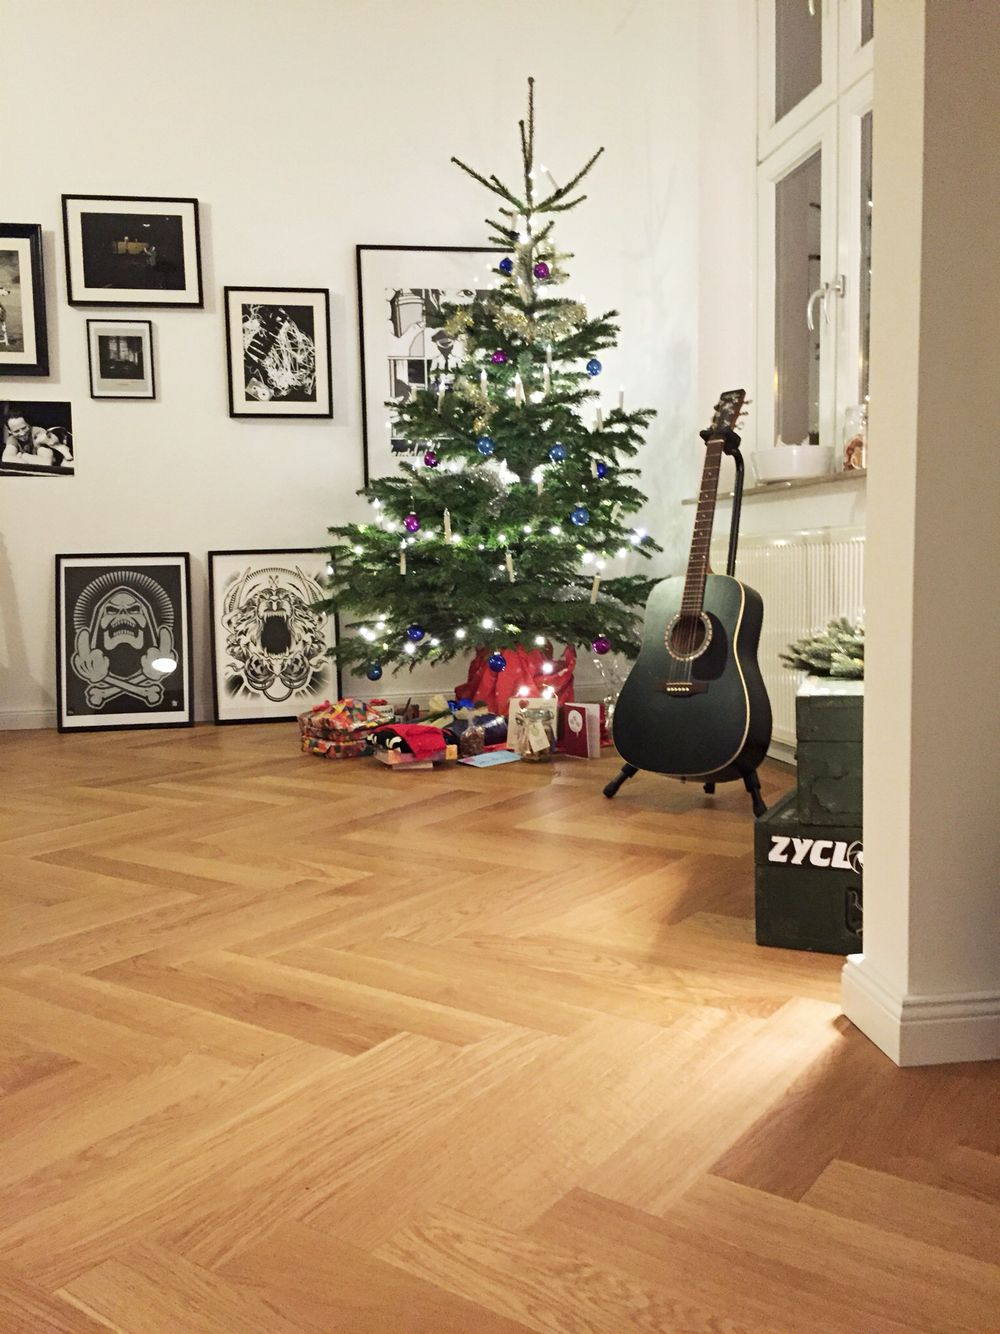 Fußboden Verlegen Krefeld Love This Style Christmastree On Perfect Floor Fischgrät